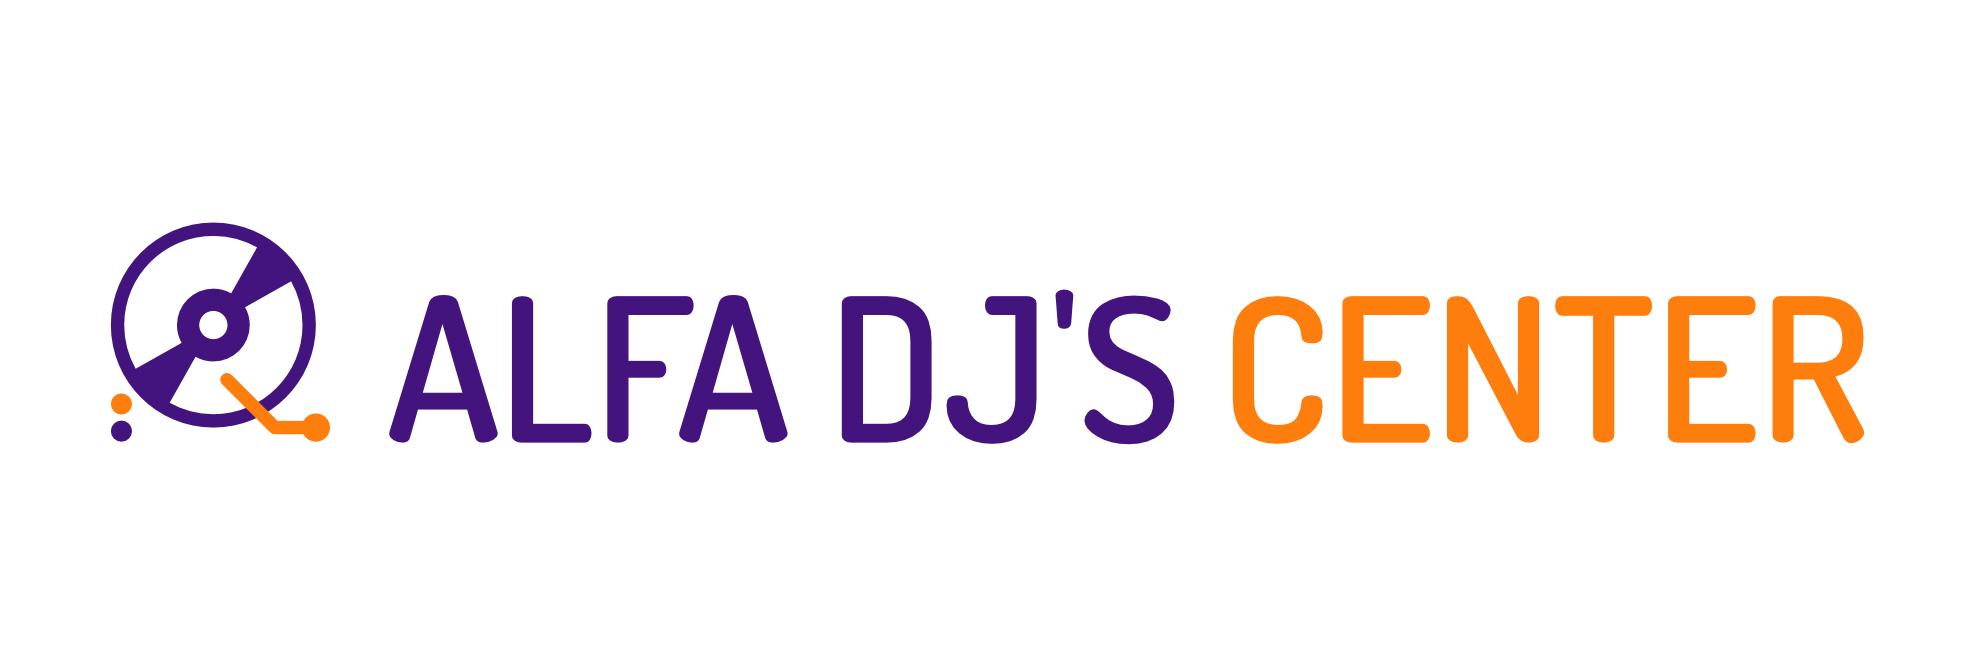 logo alfa dj's center